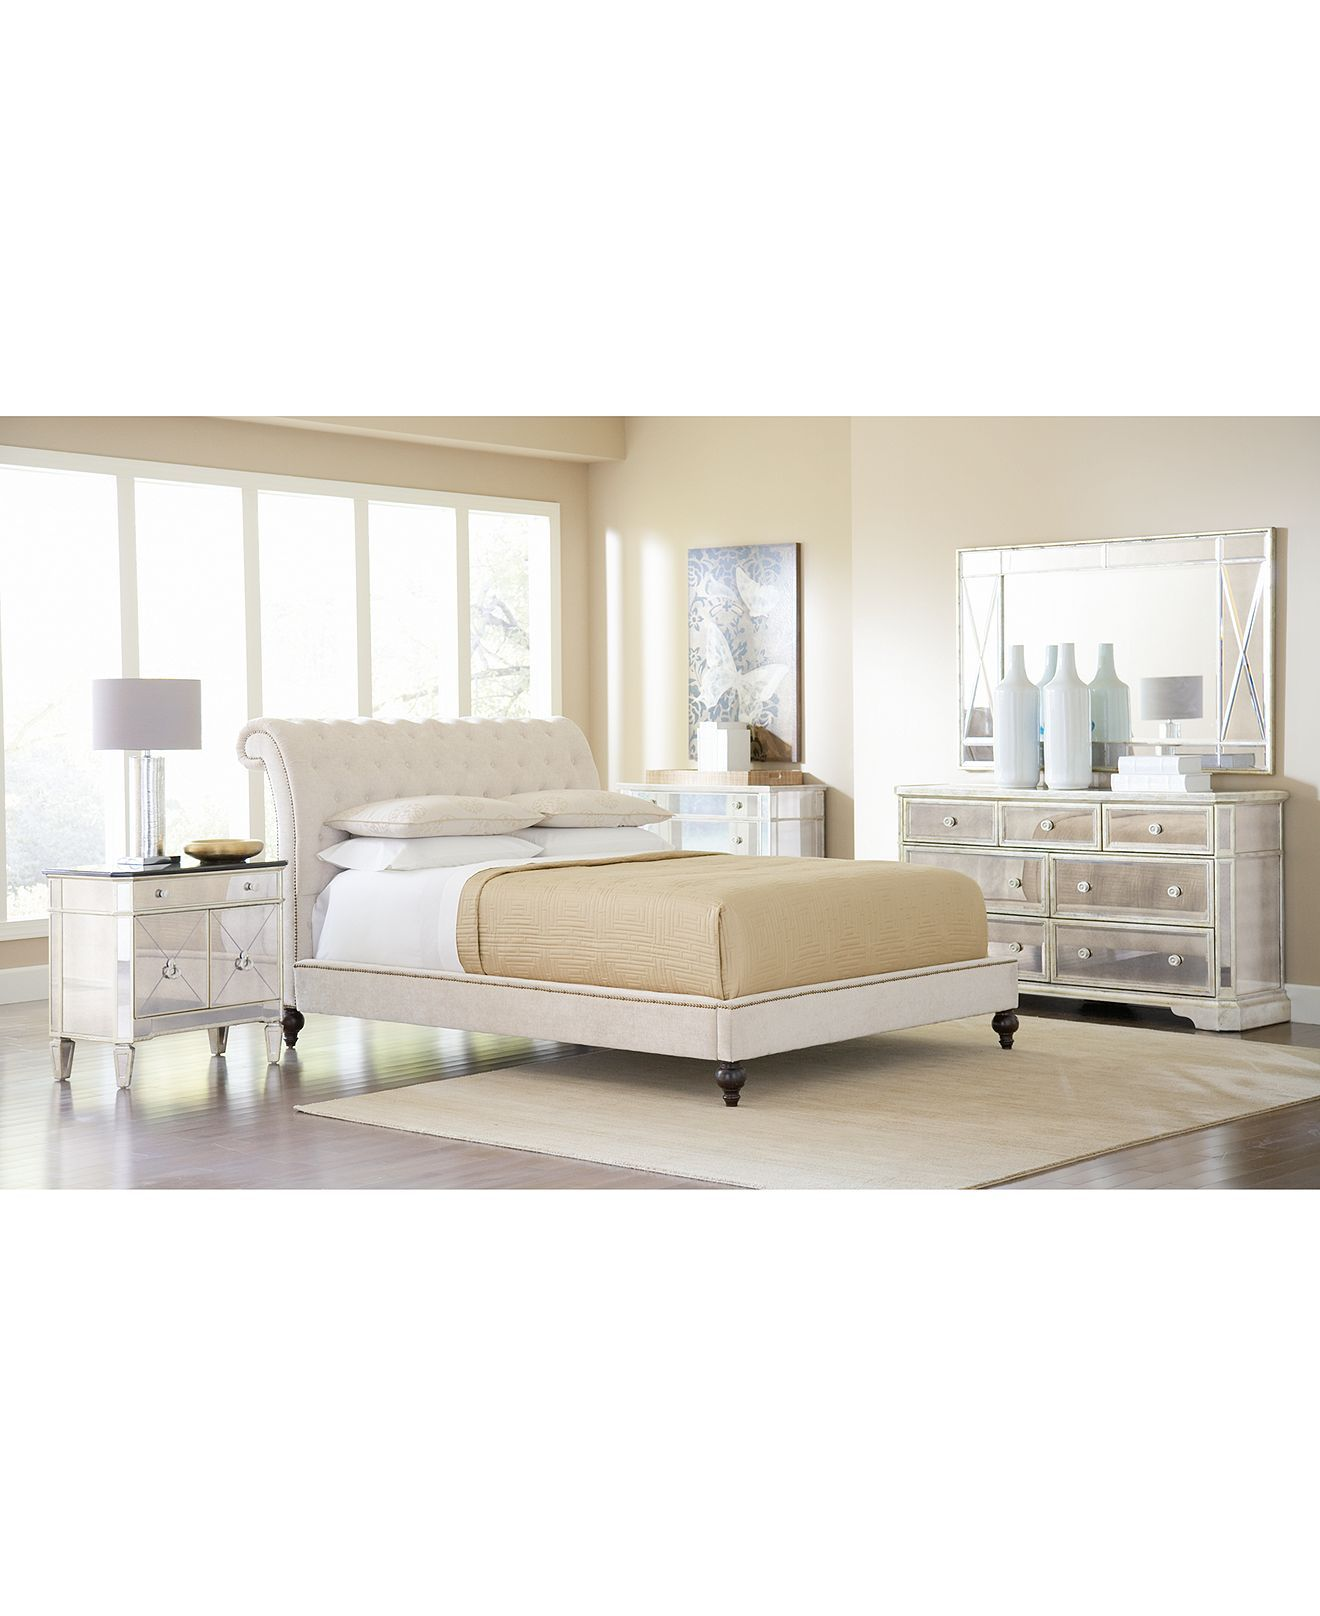 Marais Bedroom Furniture Sets   Pieces  Mirrored   Bedroom Furniture    furniture   Macy s. Marais Bedroom Furniture Sets   Pieces  Mirrored   Bedroom